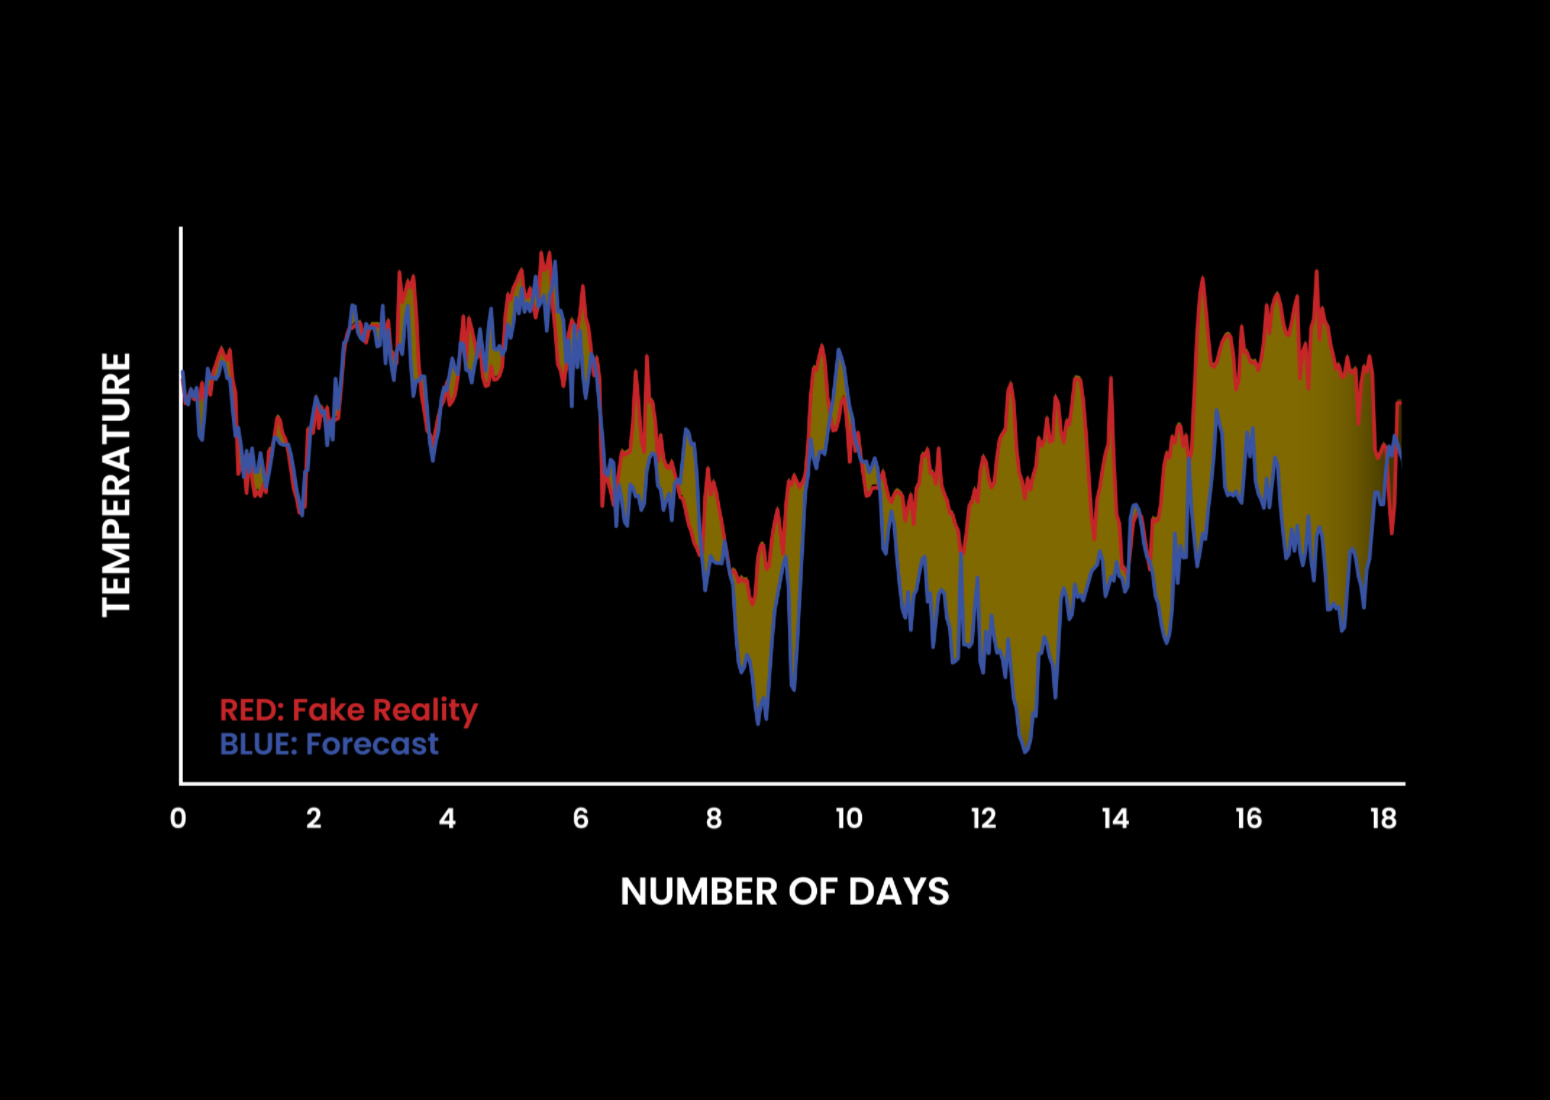 20-day forecast simulation with starting conditions that differed on the order of a thousandth of a degree of the control (Forecast vs Fake Reality) yielded drastically different results past six days.